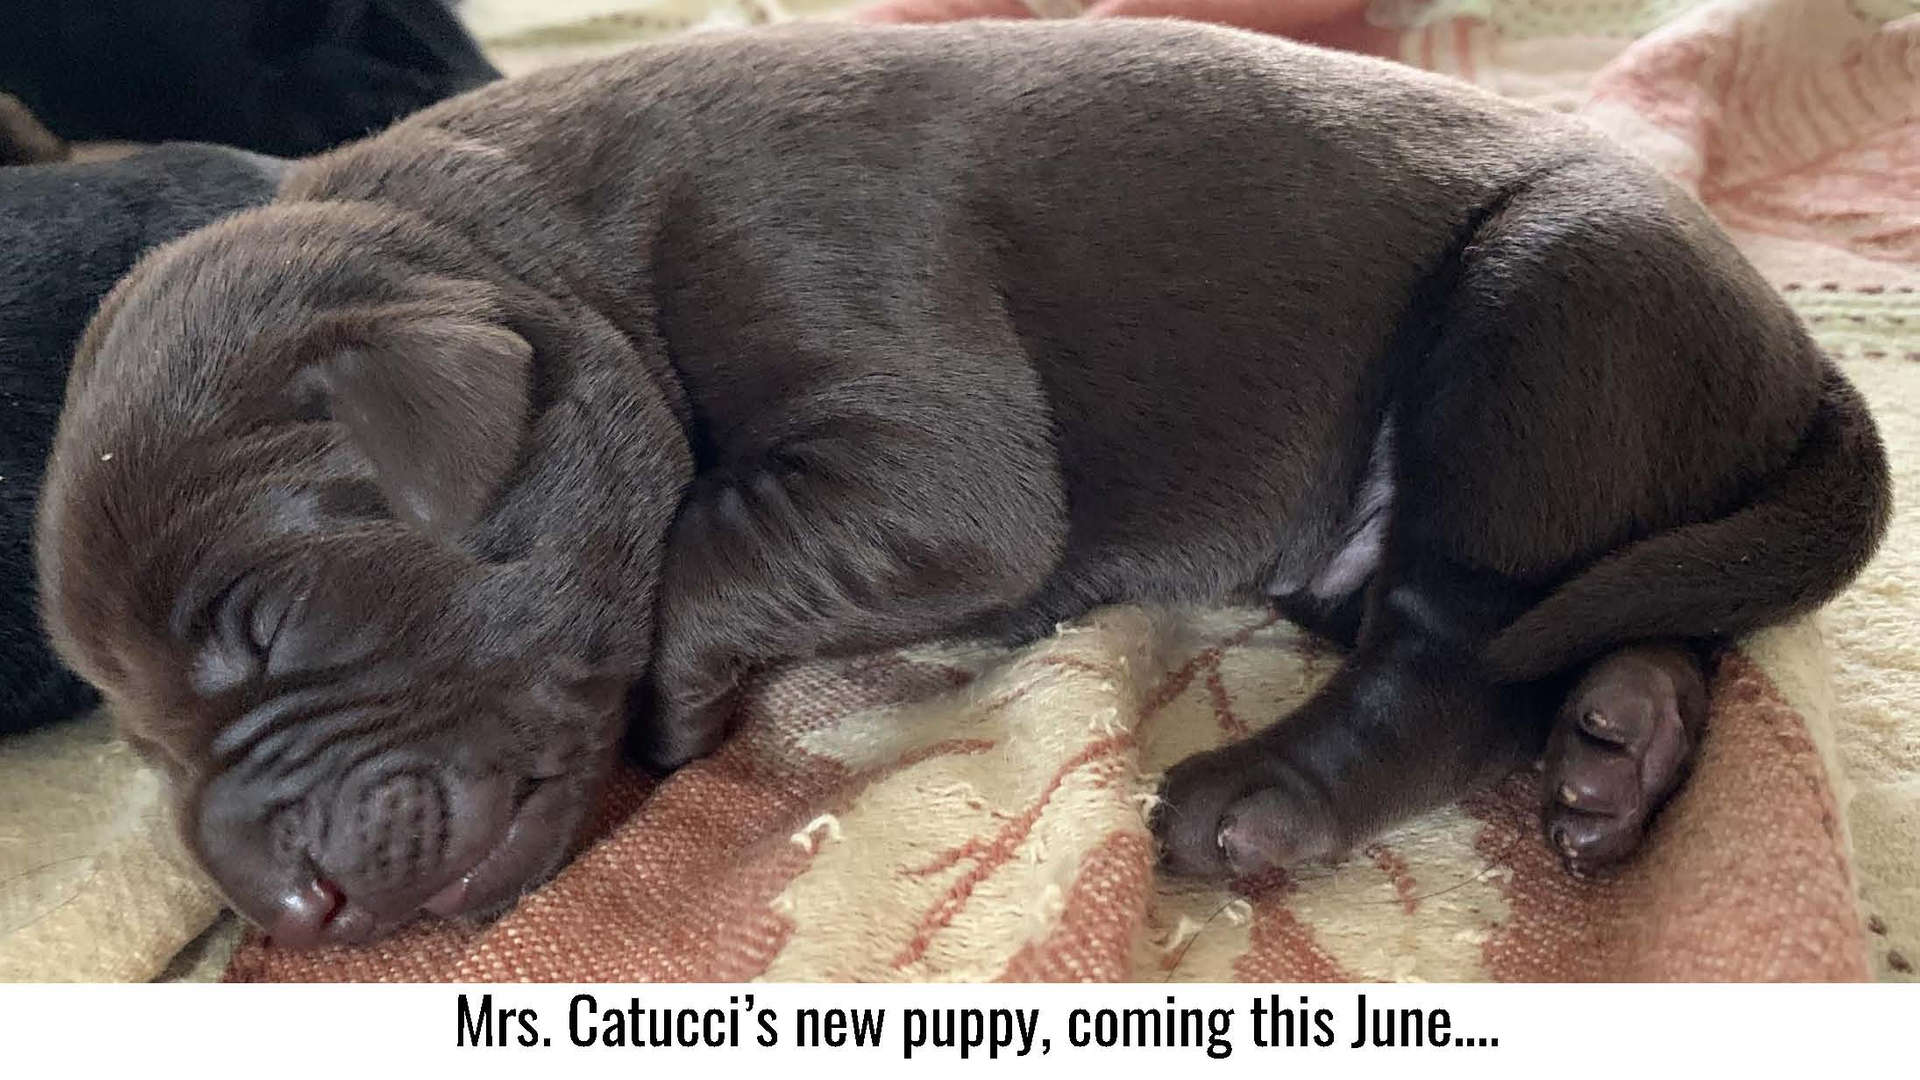 Mrs. Catucci's new puppy coming in June.